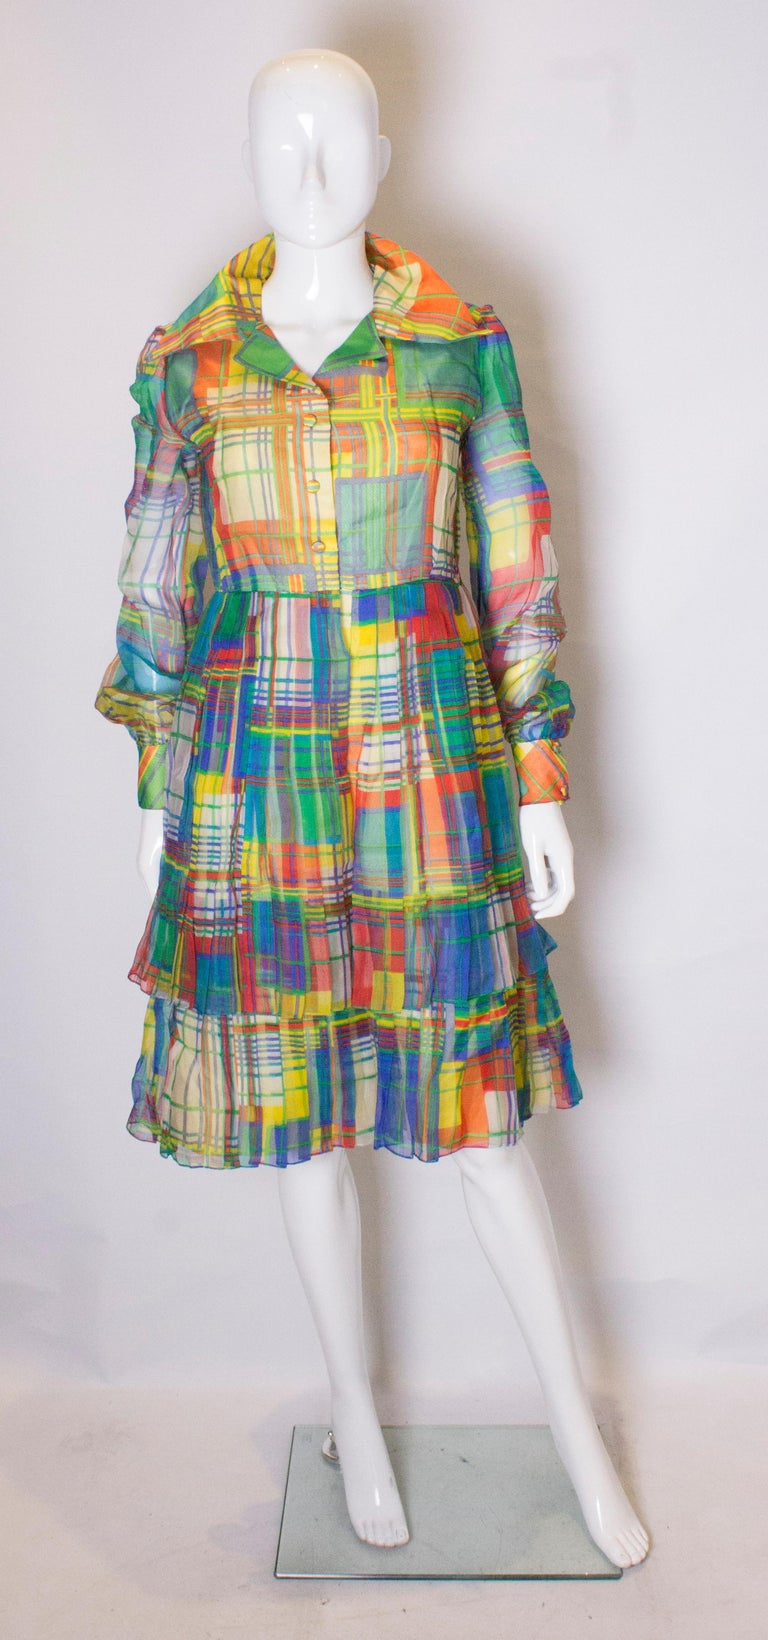 A head turning vintage dress by Nettie Vogue London. The dress is in a wonderful multicoloured print with layers of pleating on the skirt . It has popper opening  at the front and on the cuffs.